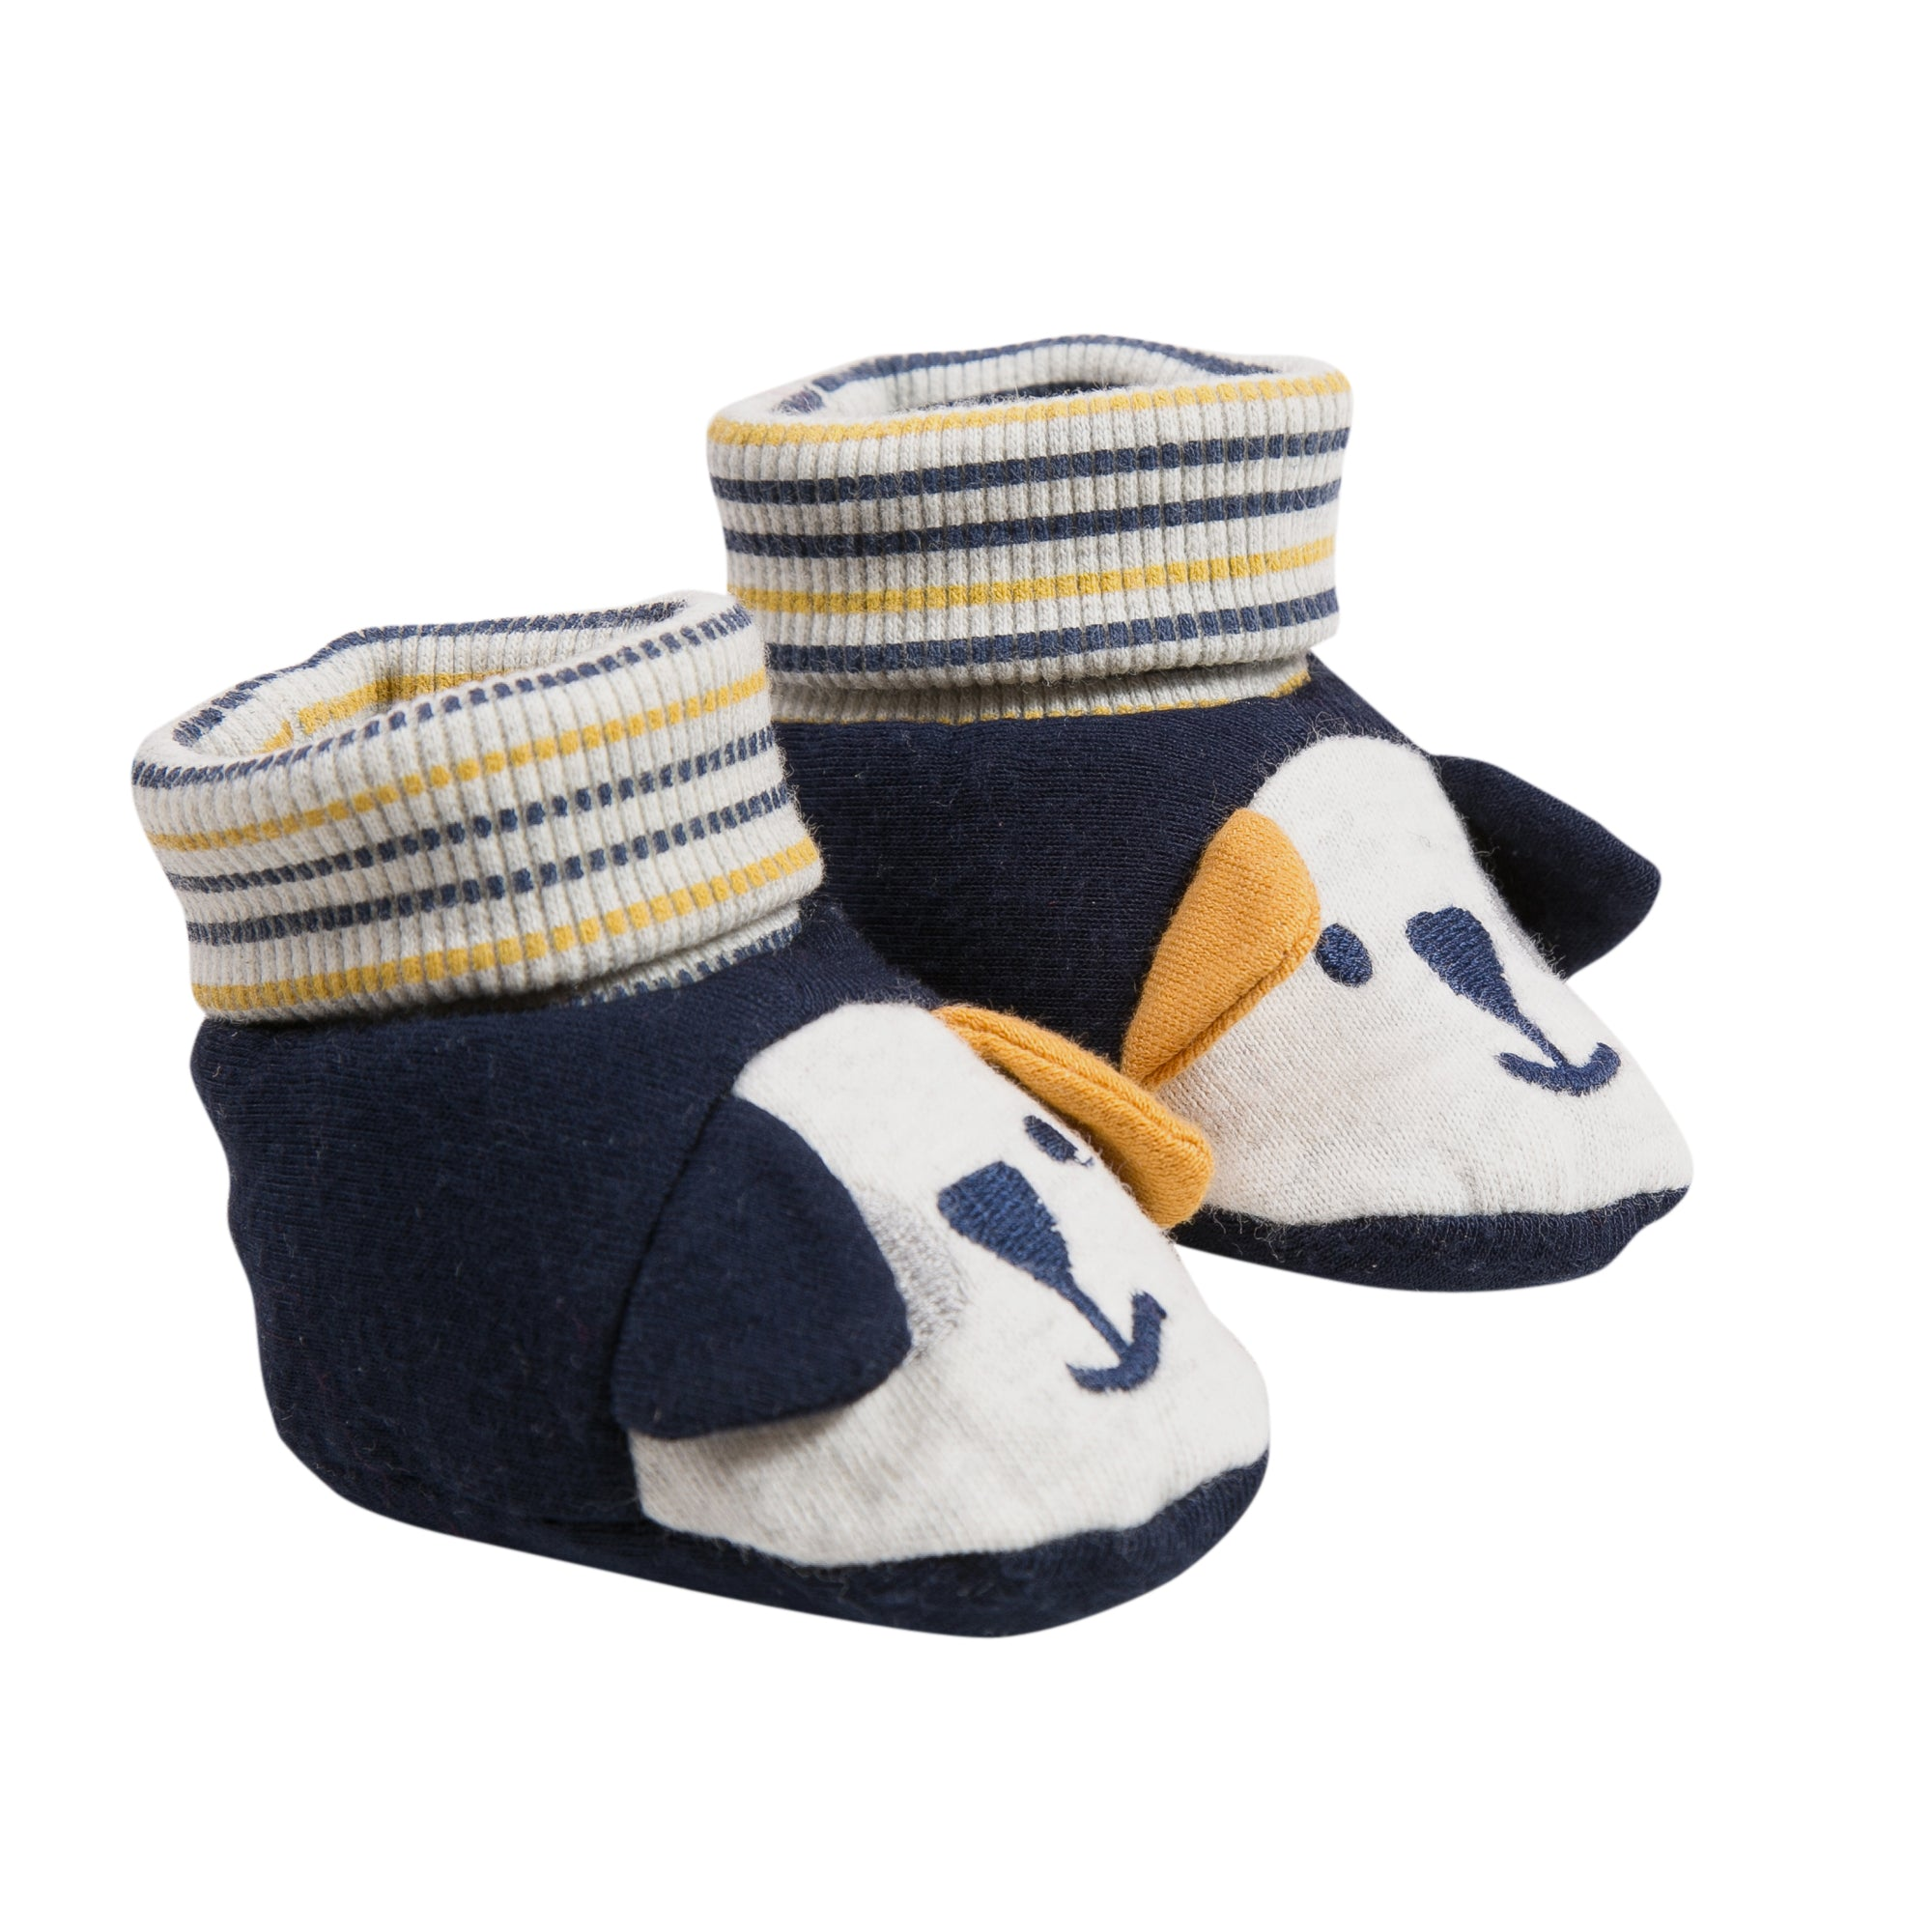 "Etoiles"" slipper socks Catimini"